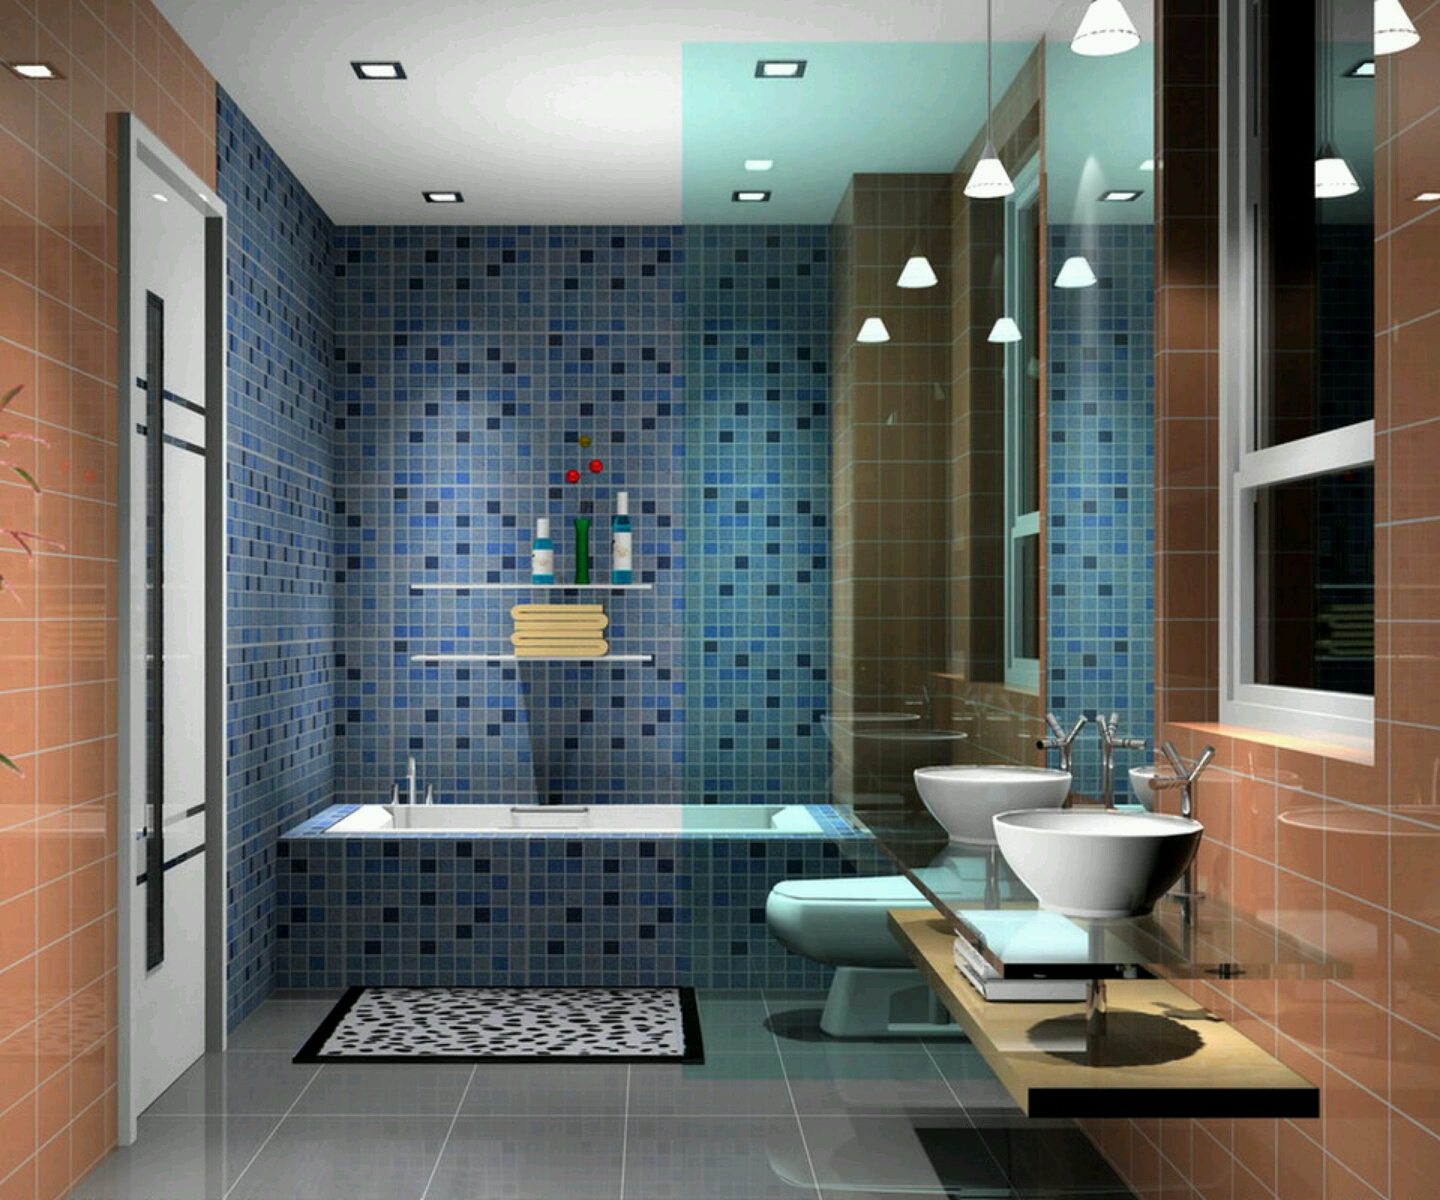 Modern bathrooms best designs ideas for Designs of bathroom tiles